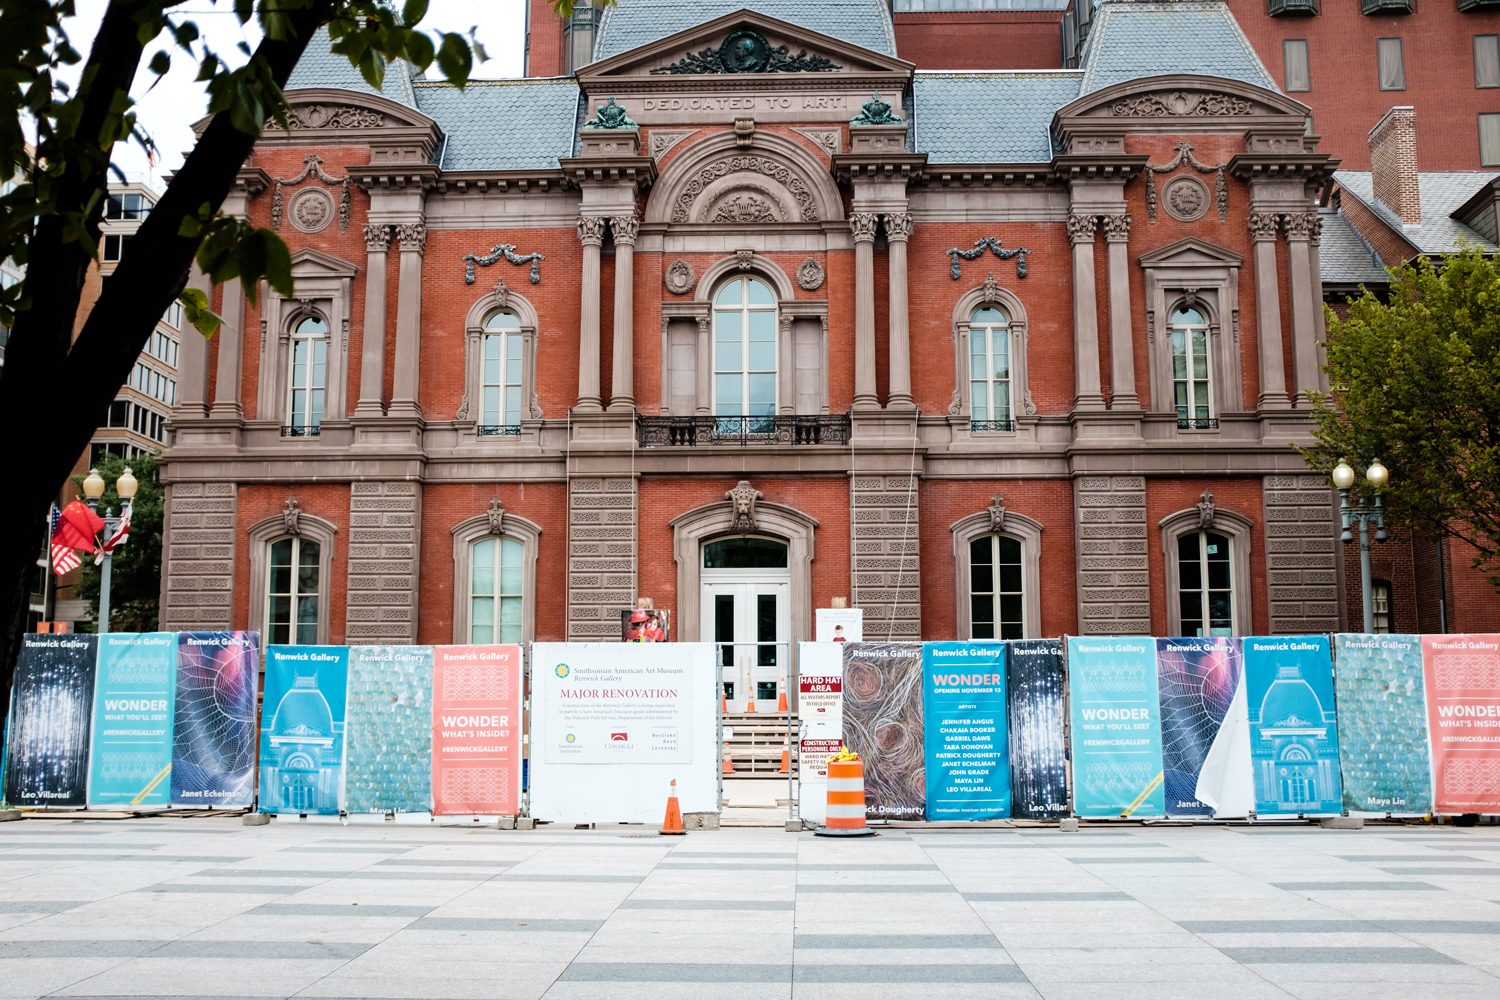 The Renwick, nearing the end of a major two-year renovation